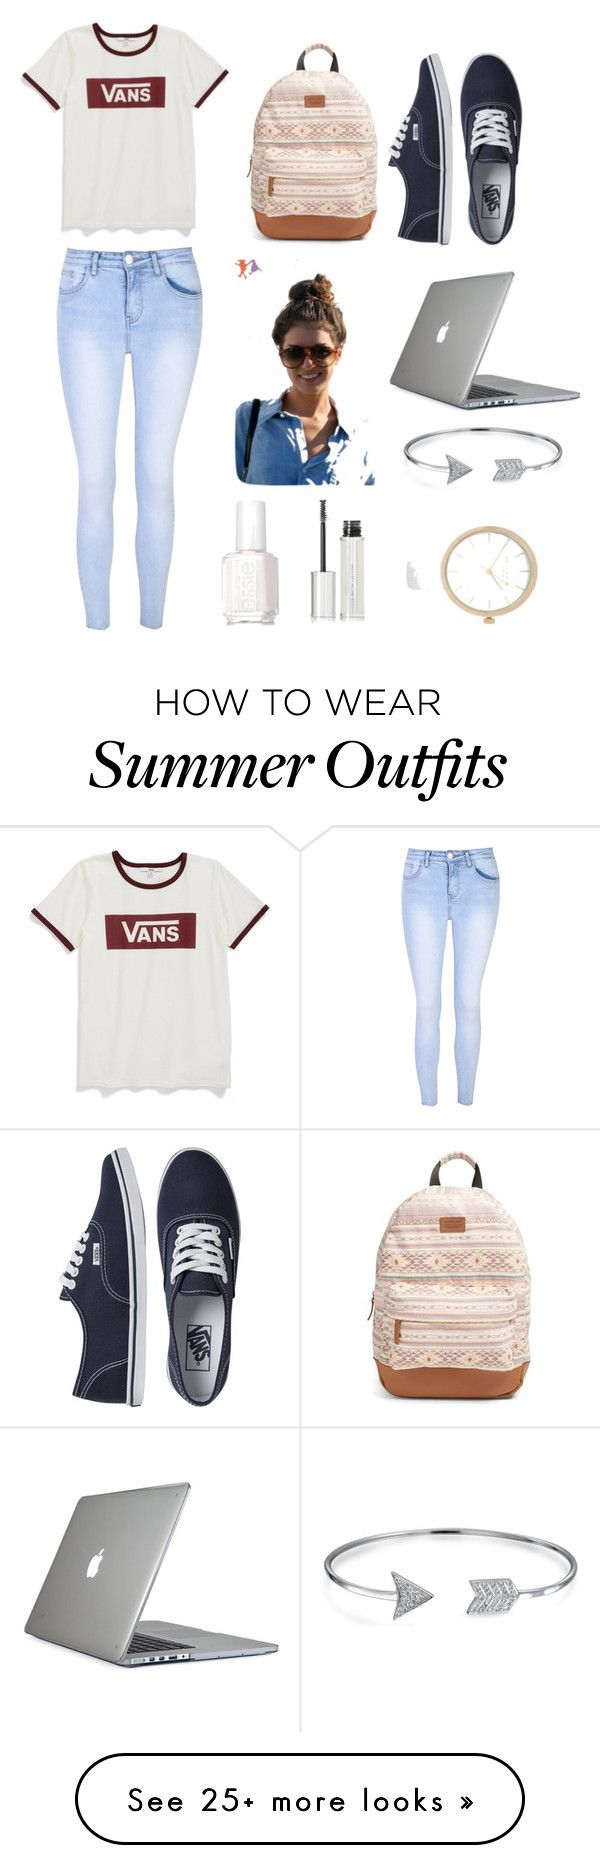 """Back To School Outfit"" by makaykayy on Polyvore featuring Vans, Rip Curl, Glamorous, Speck, Essie, Givenchy, Bling Jewelry, River Island, backpacks and contestentry"